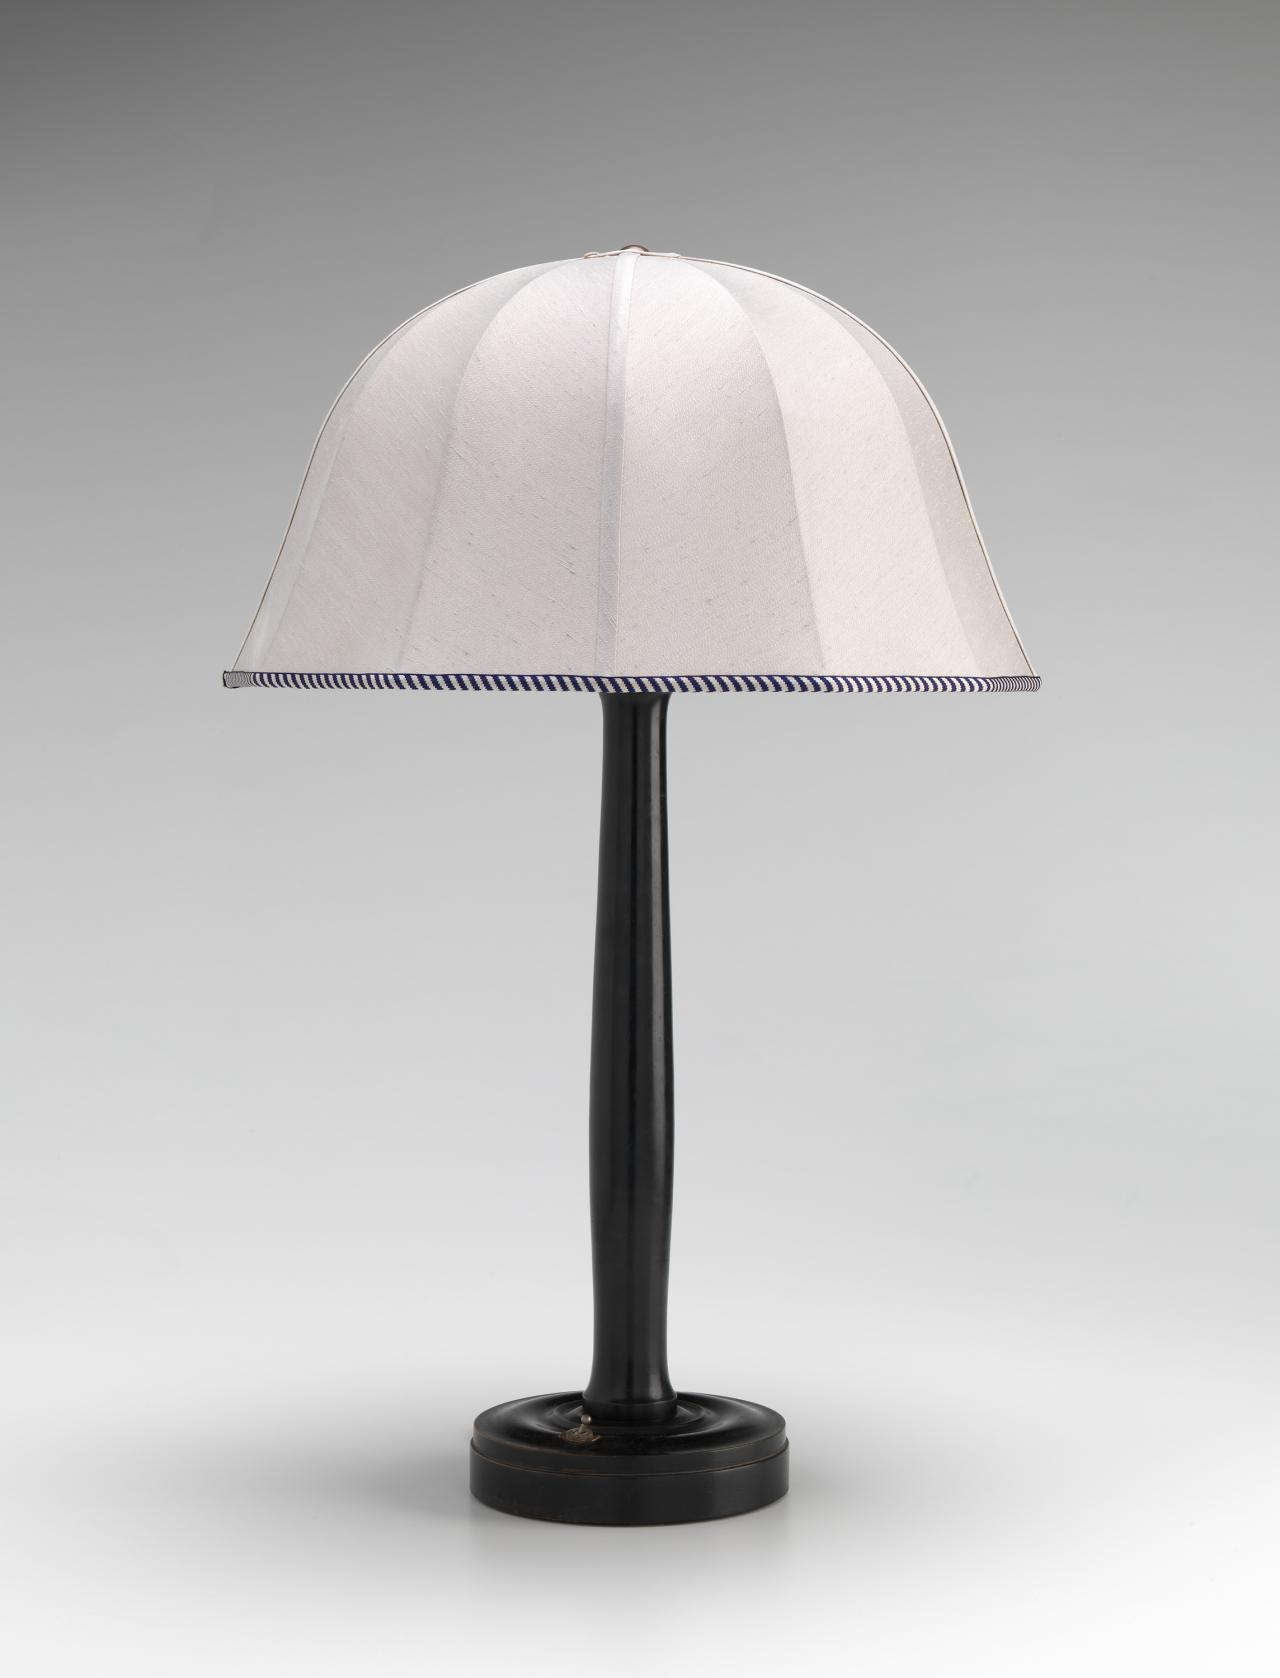 Table lamp, from the Gallia apartment smoking room